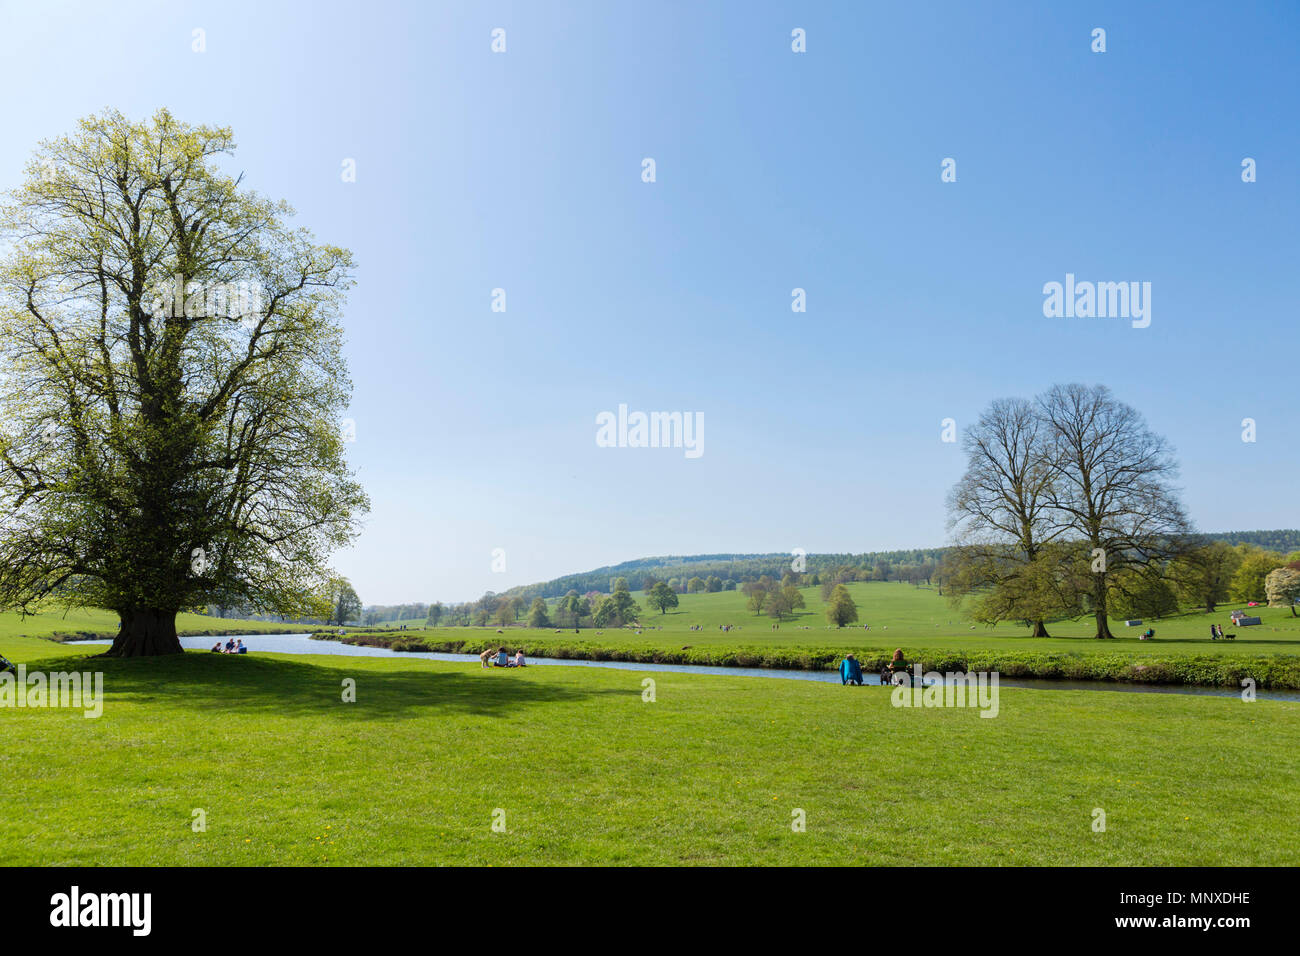 People picnicking on the banks of the River Derwent in Chatsworth Park, Derbyshire, England, UK - Stock Image